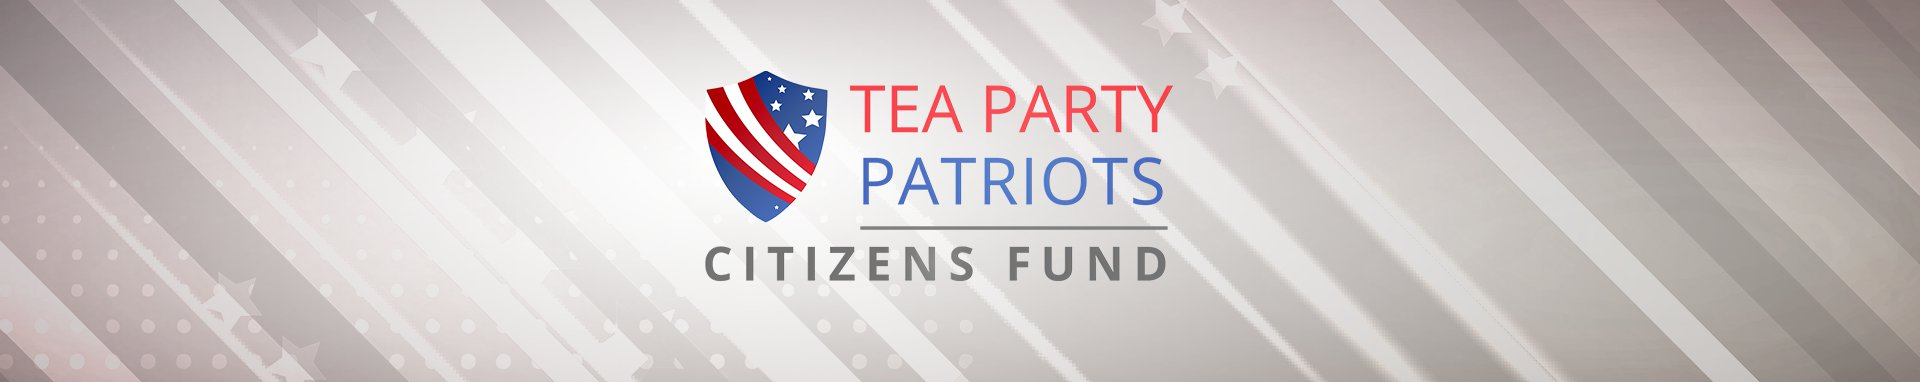 "Tea Party Patriots Citizens Fund Calls for Applying ""Clyburn Standard"" to All Members of Congress"